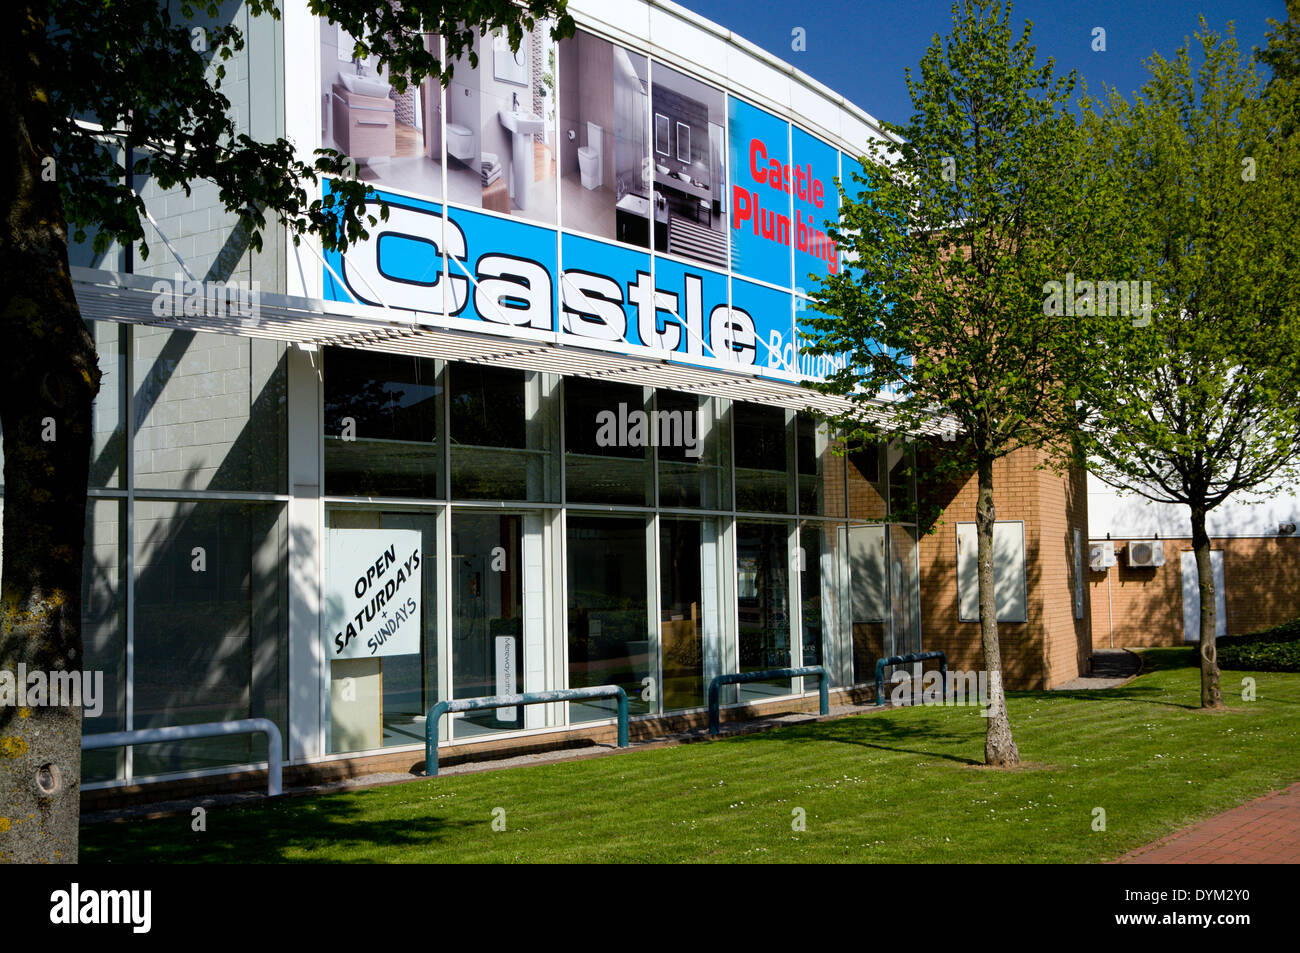 Castle Plumbing showrooms, Ocean Way, Cardiff, Wales, UK. - Stock Image